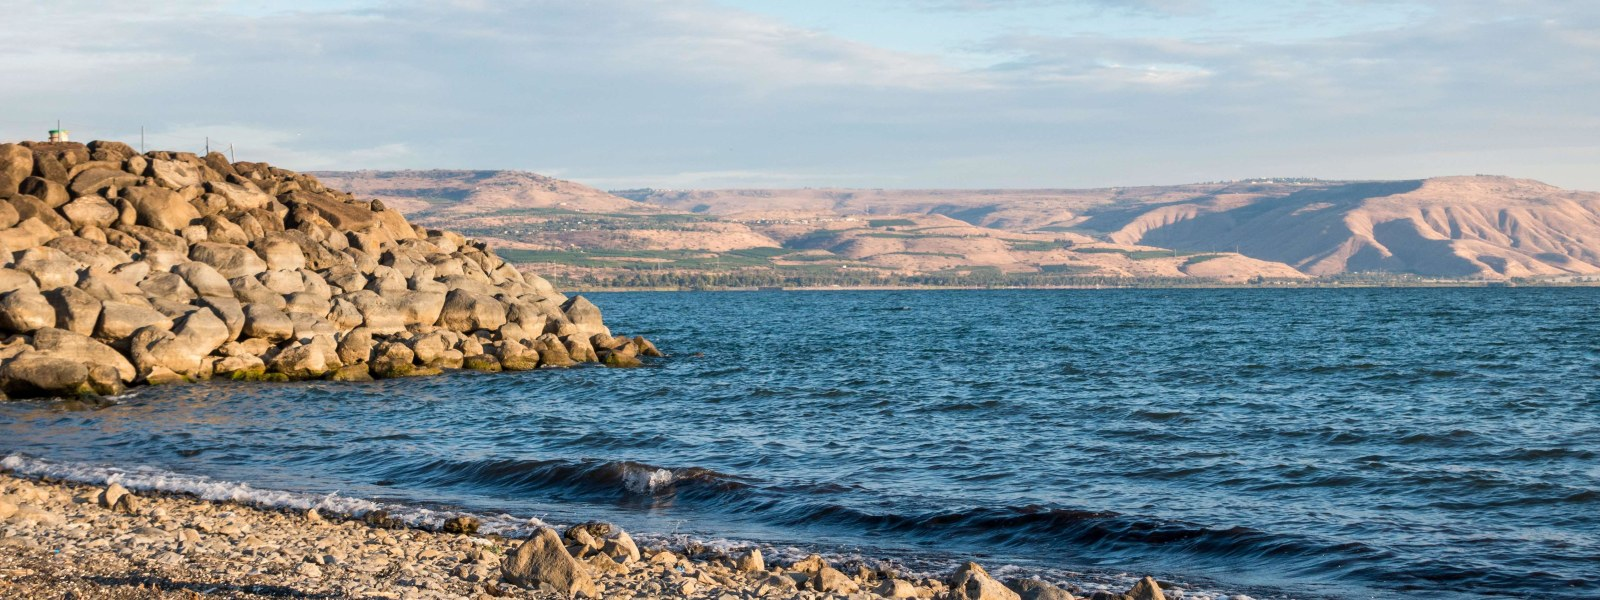 SeaofGalilee-Tour-Guide